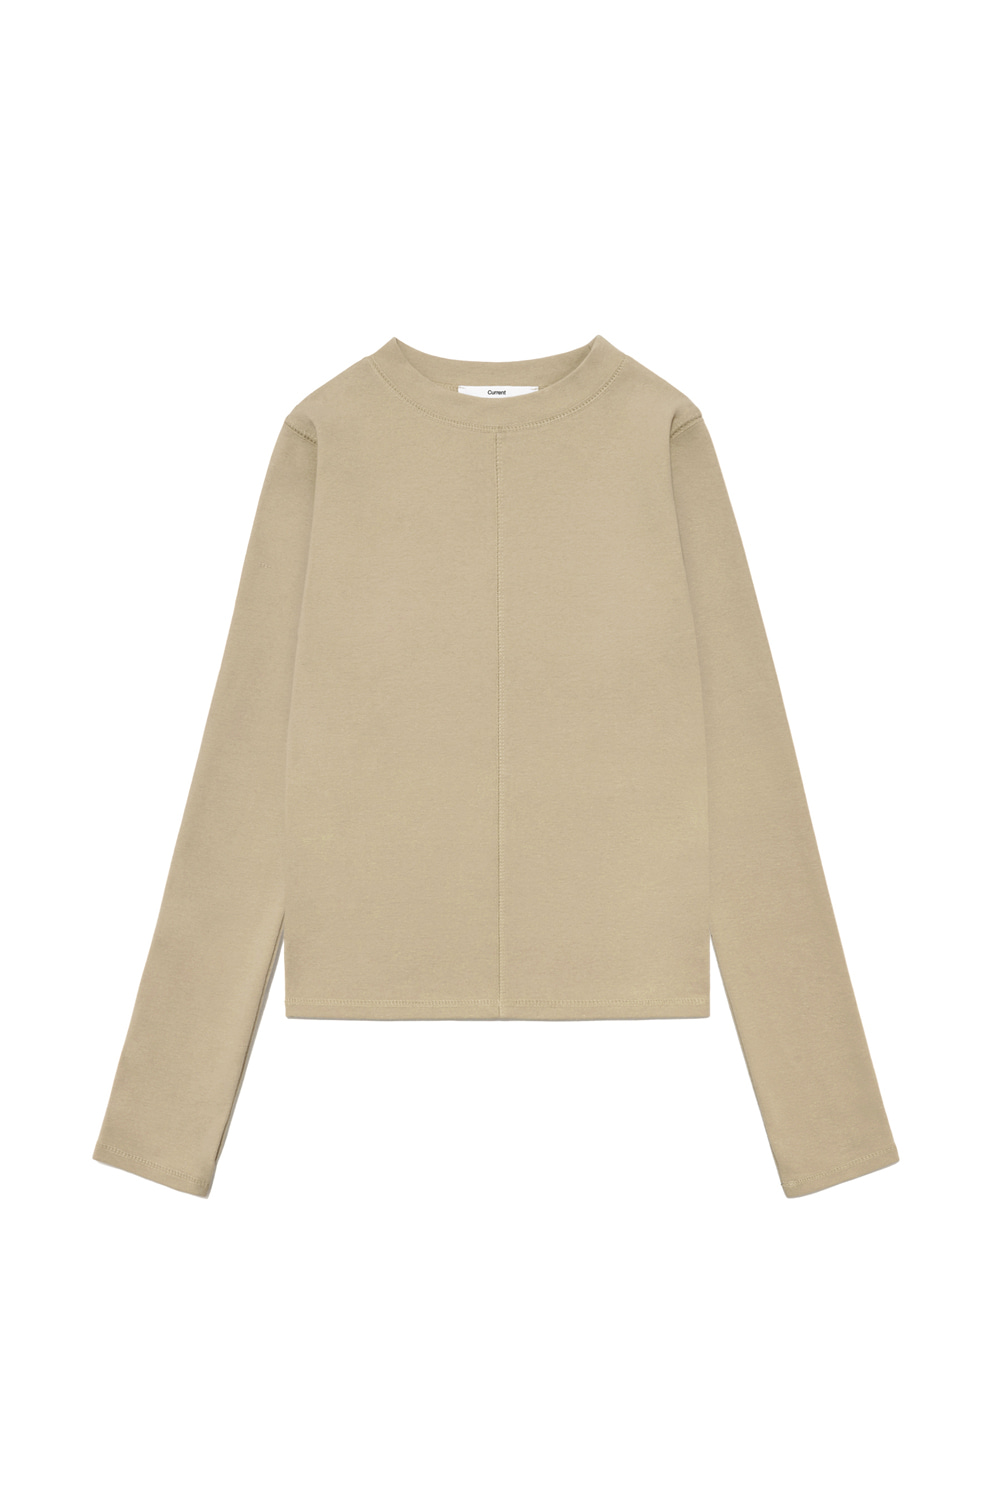 Long sleeve Tee Women [Beige]